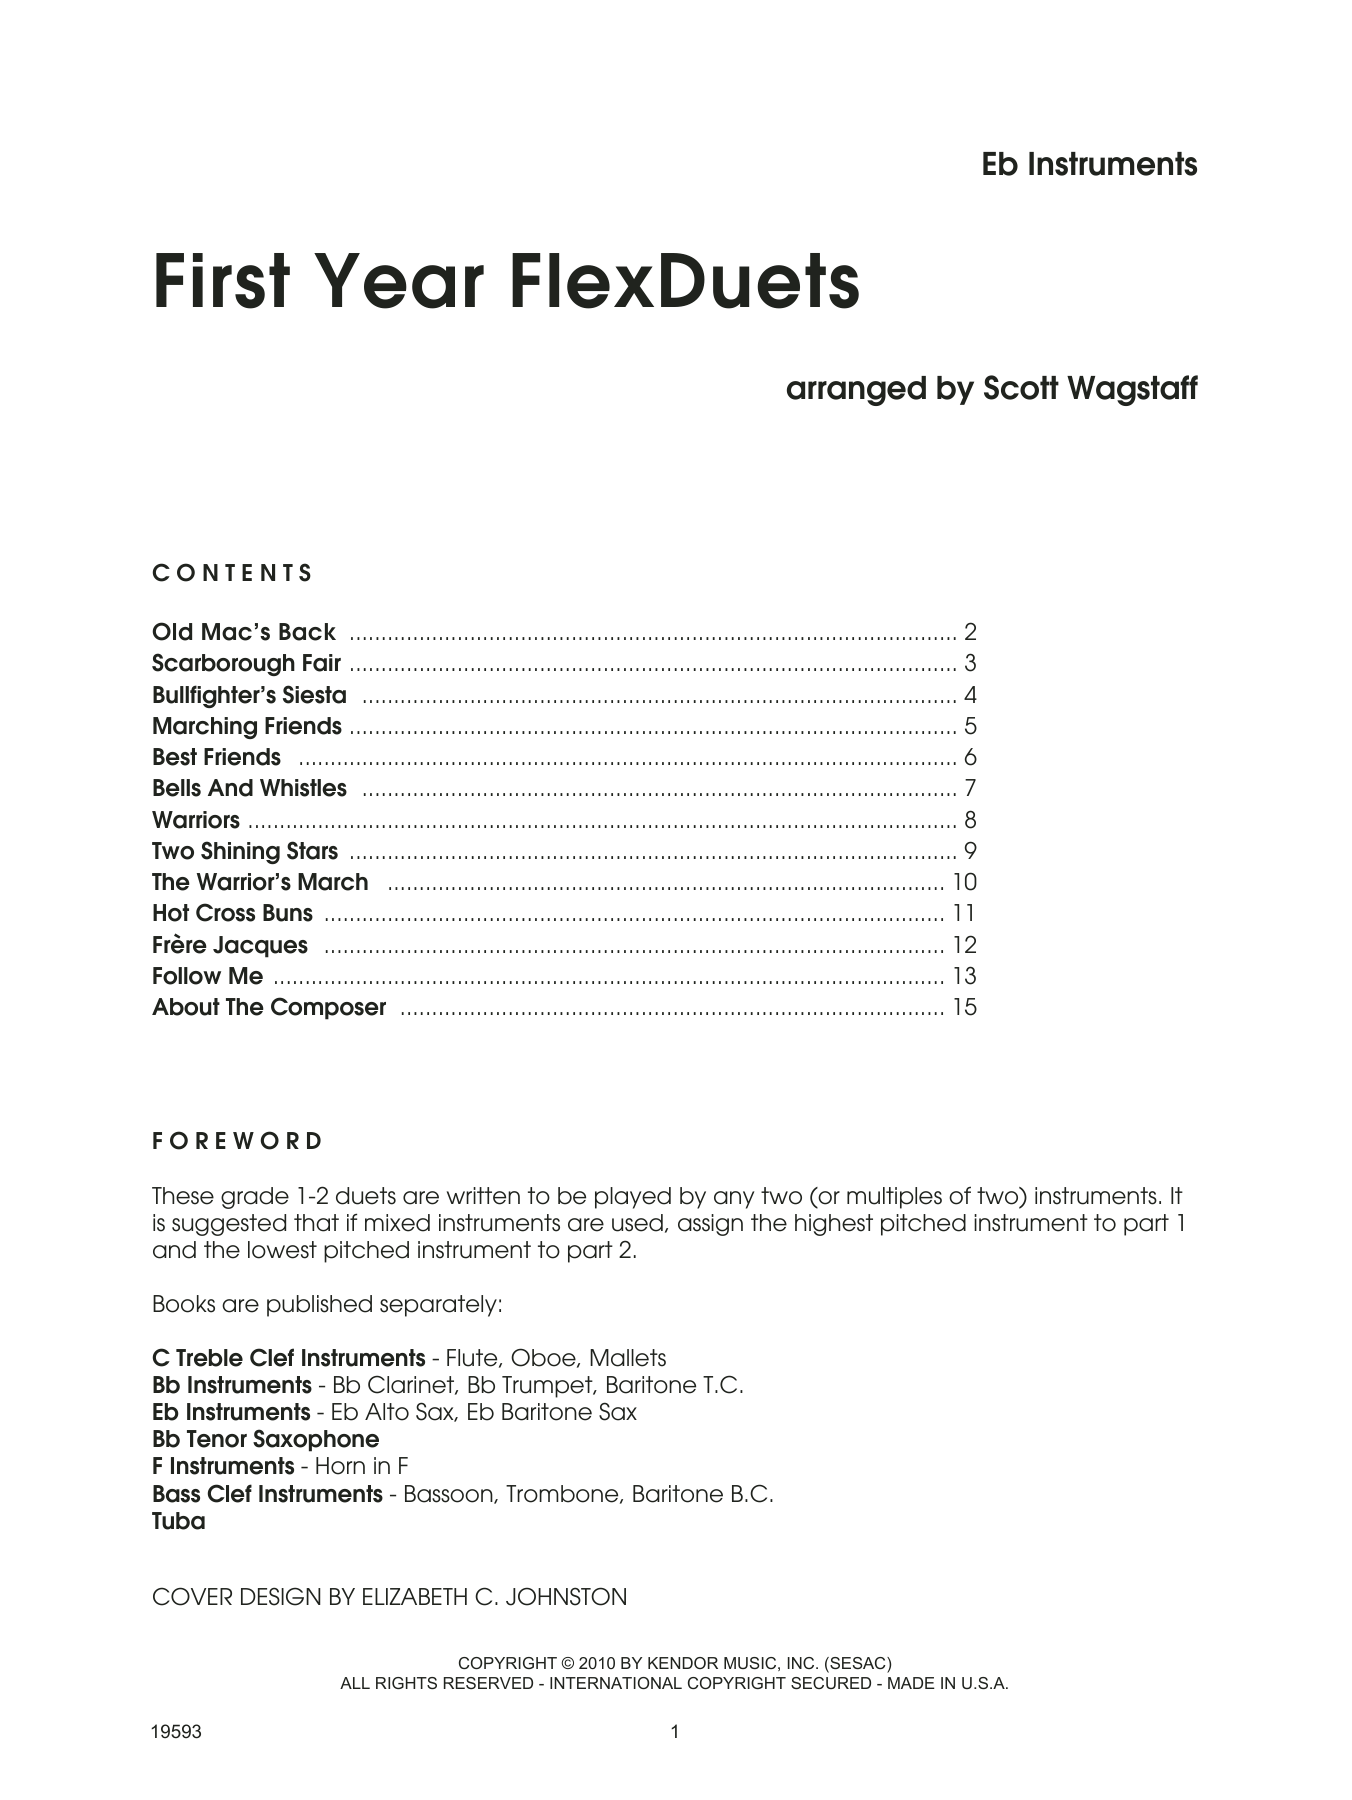 First Year FLexDuets - Eb Instruments Sheet Music